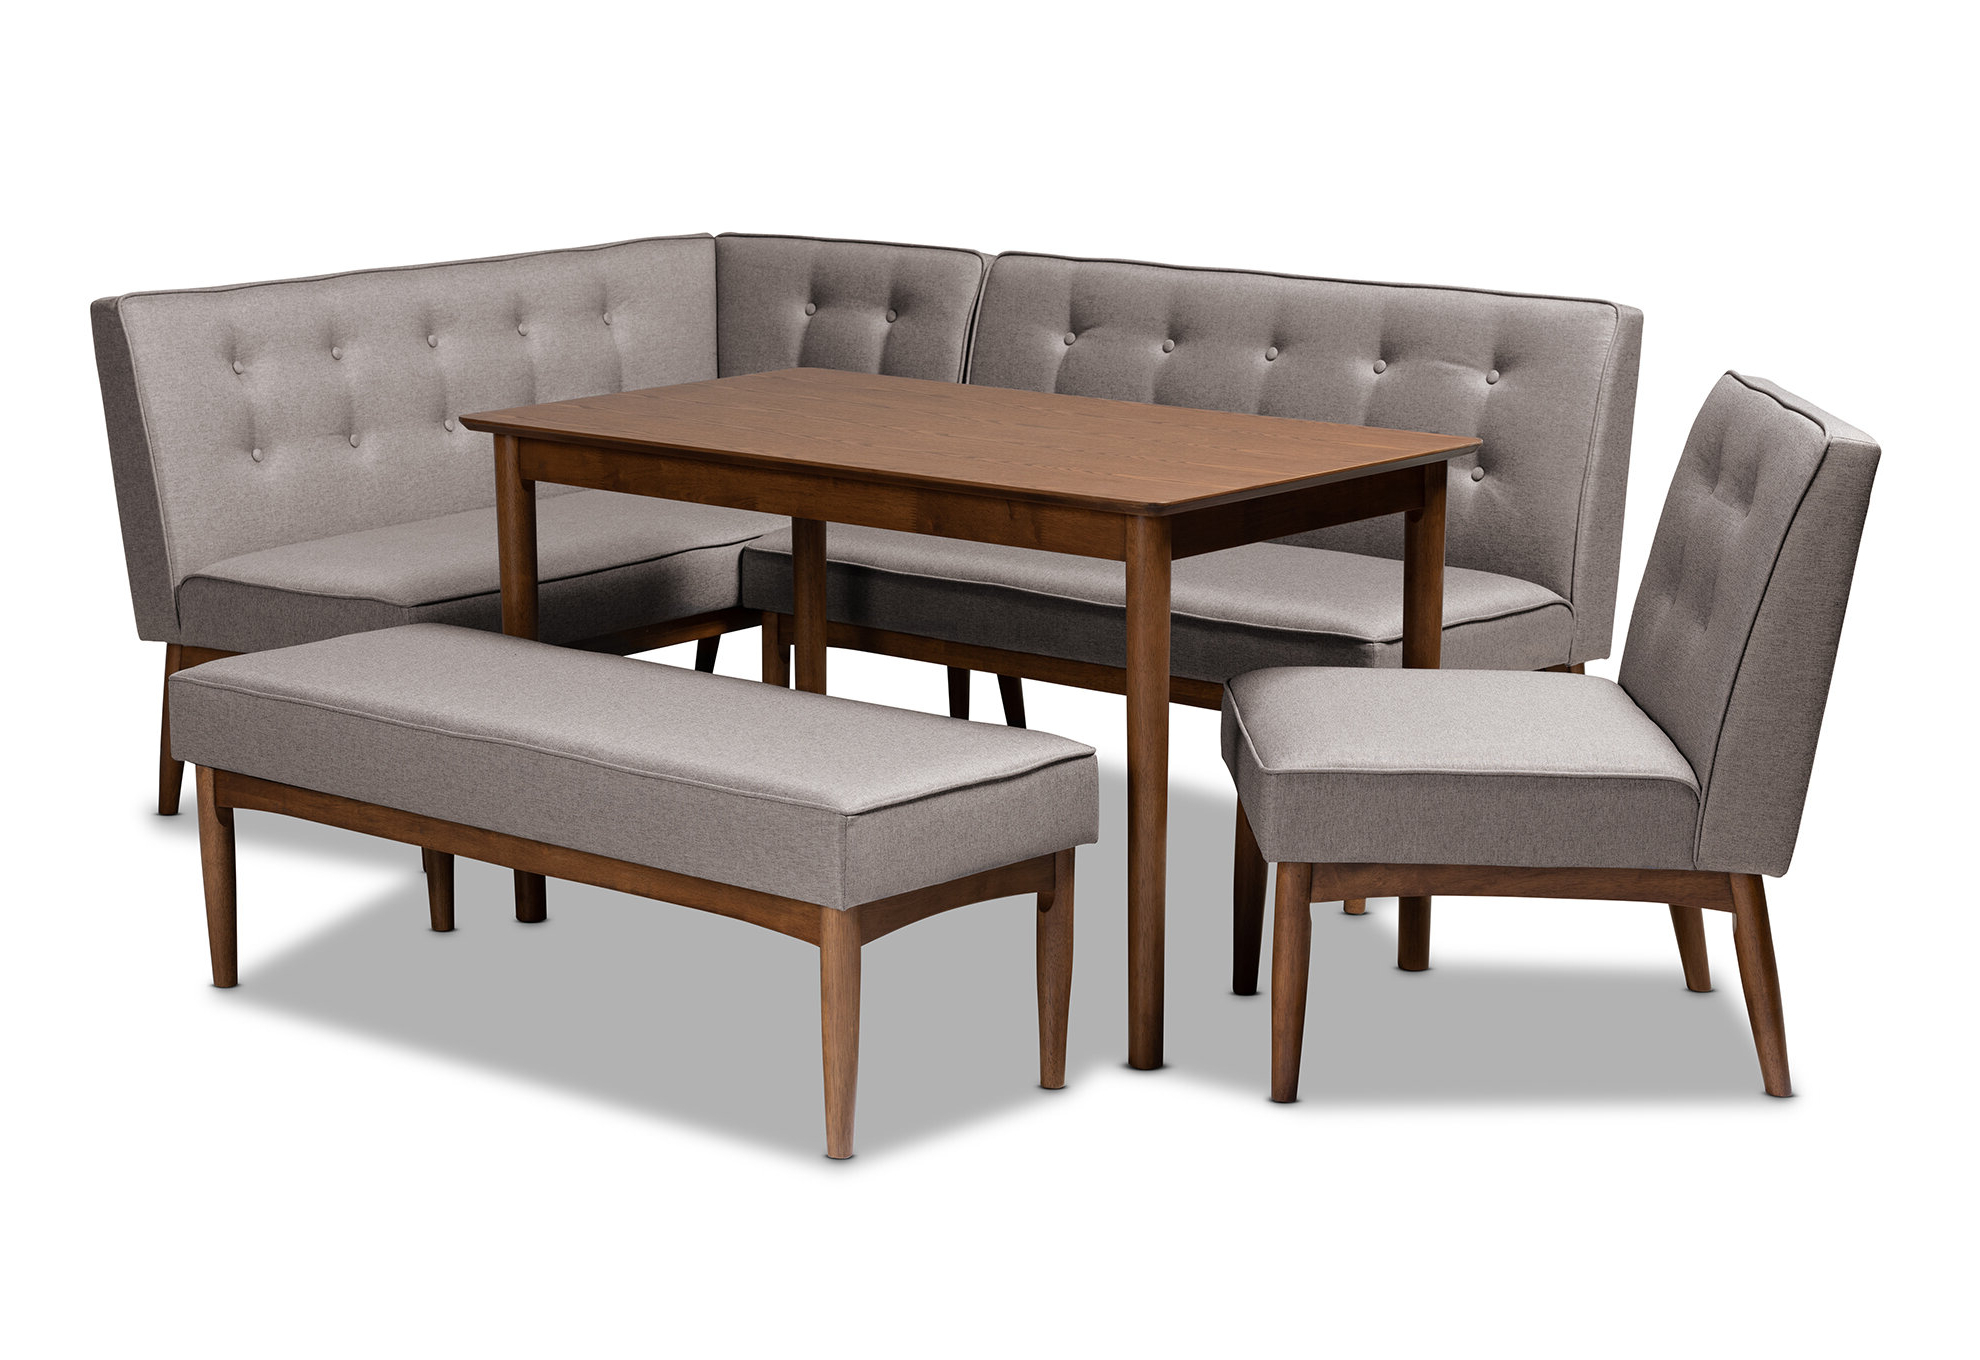 Widely Used Liles 5 Piece Breakfast Nook Dining Sets Pertaining To Bopp Mid Century Modern Upholstered 5 Piece Breakfast Nook Dining Set (View 2 of 20)